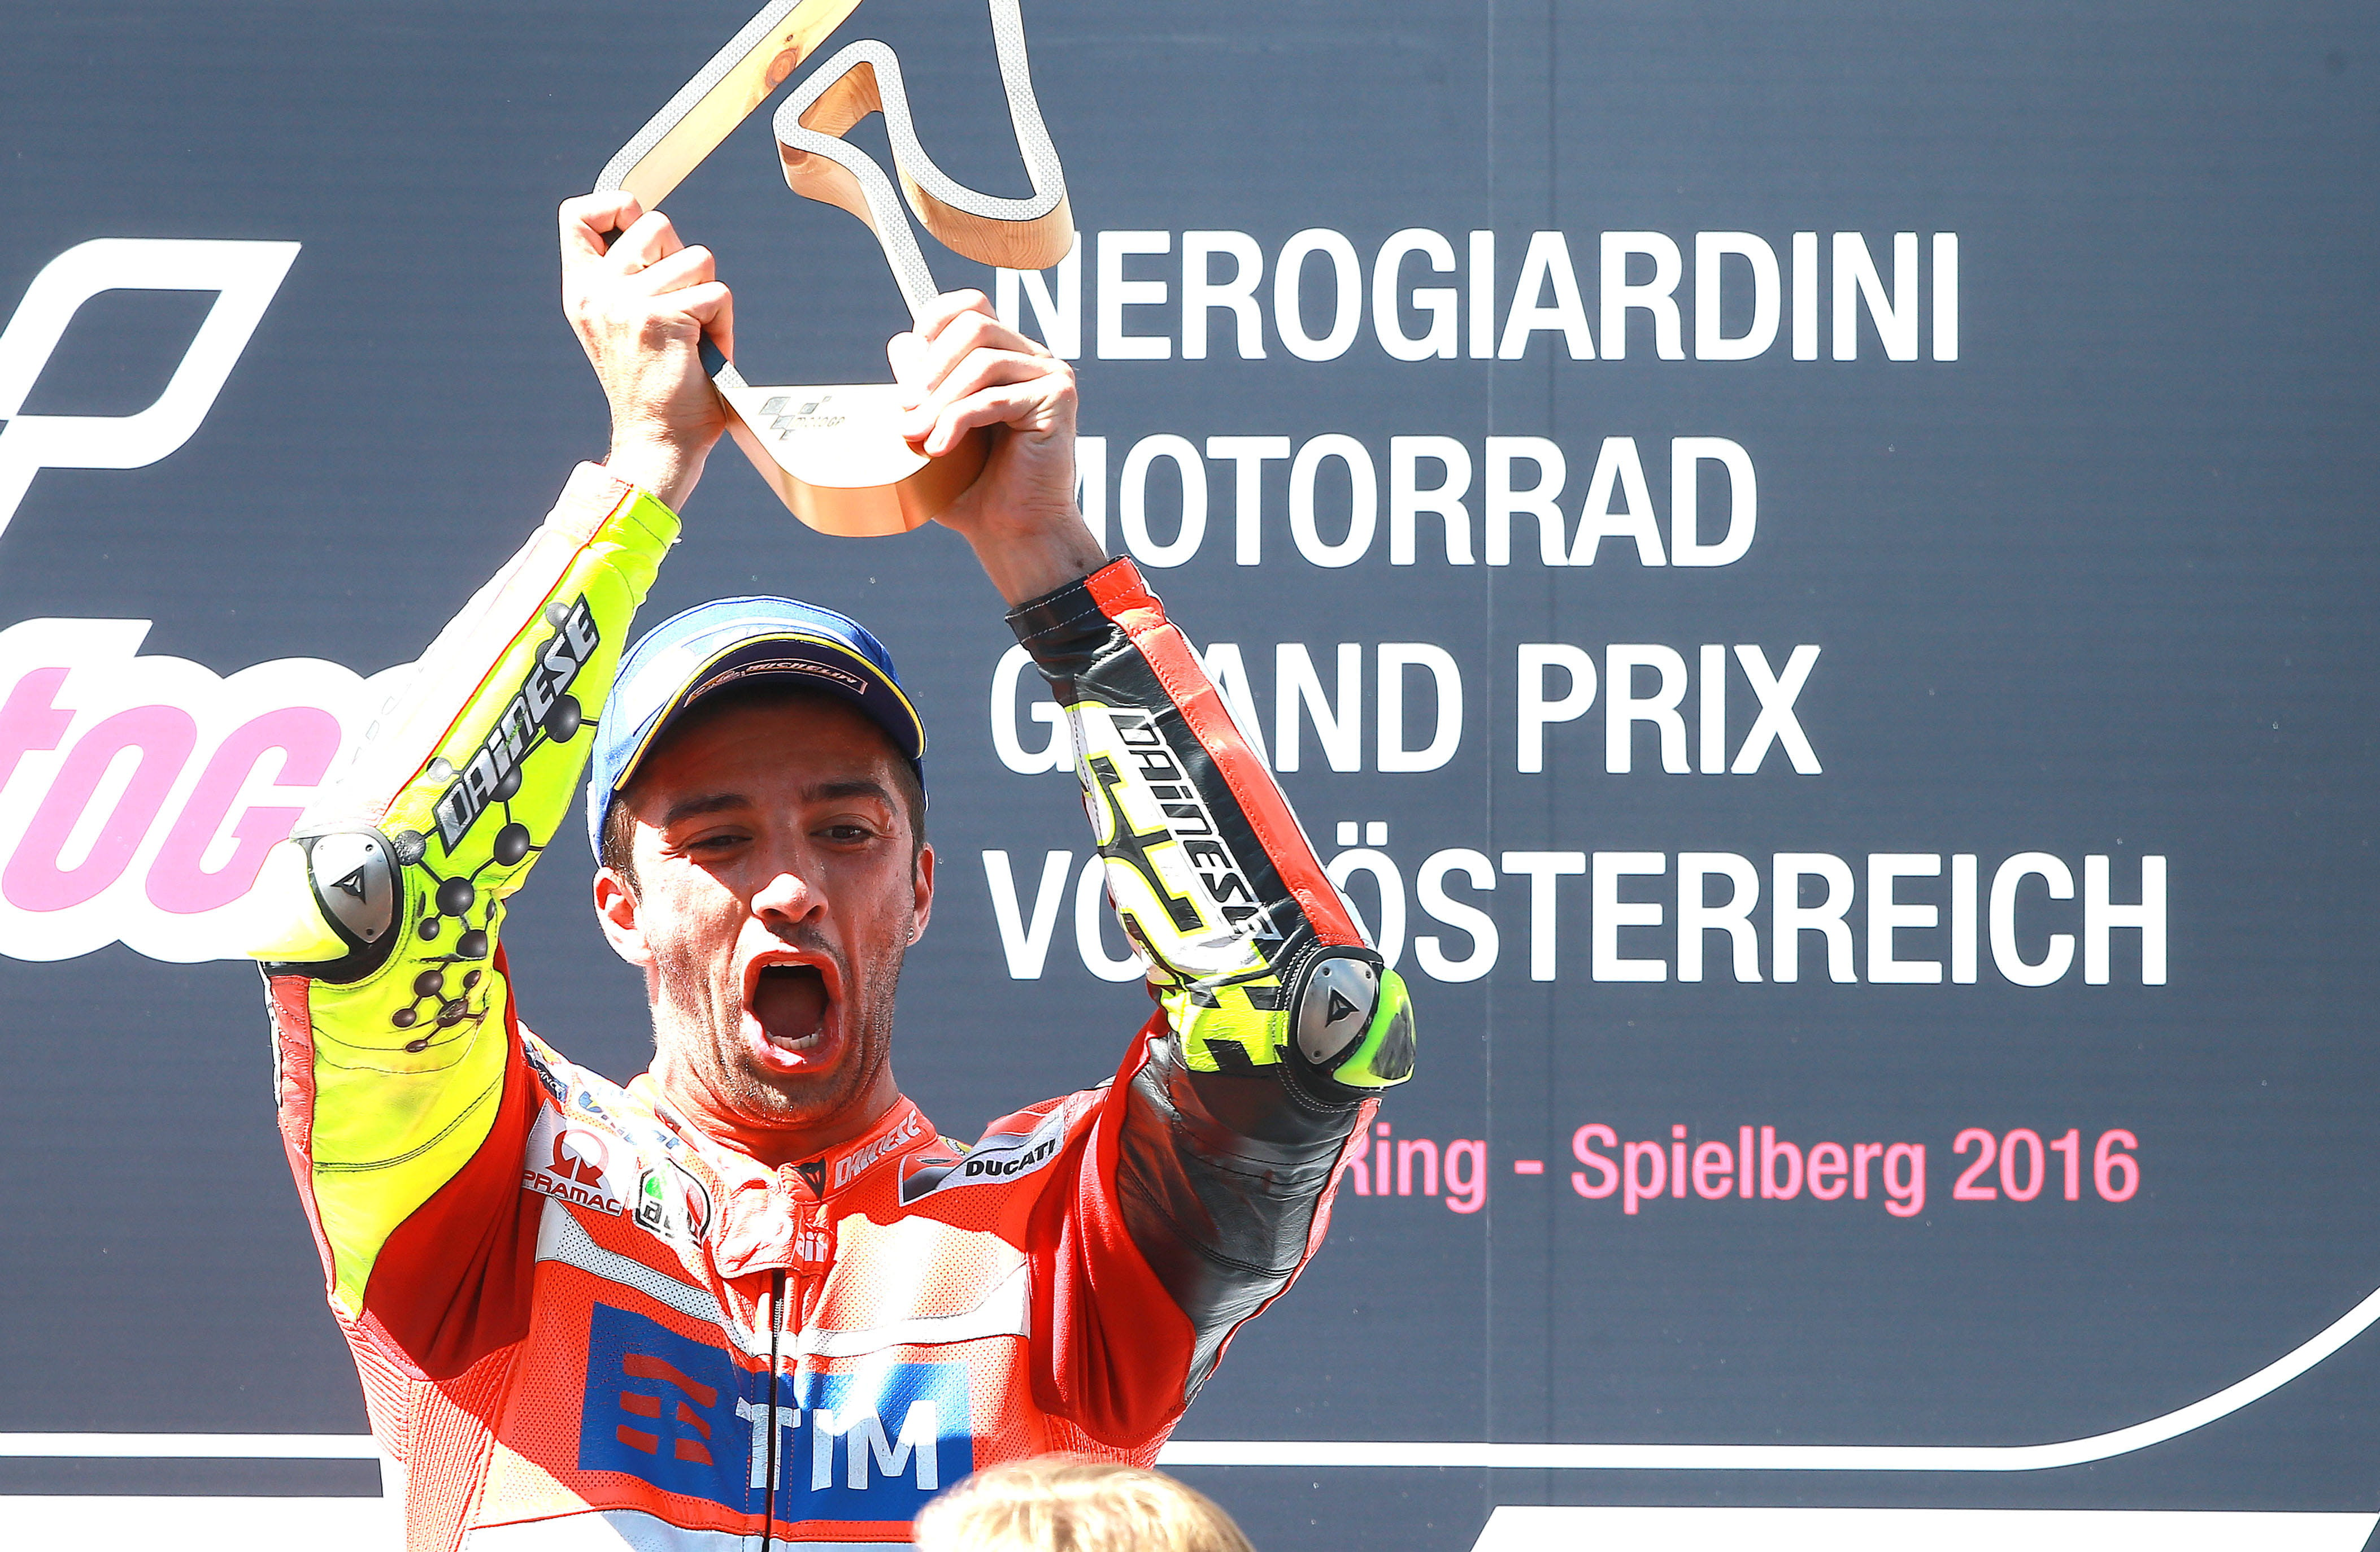 Iannone takes maiden win as Desmo power proves unstoppable at Red Bull Ring